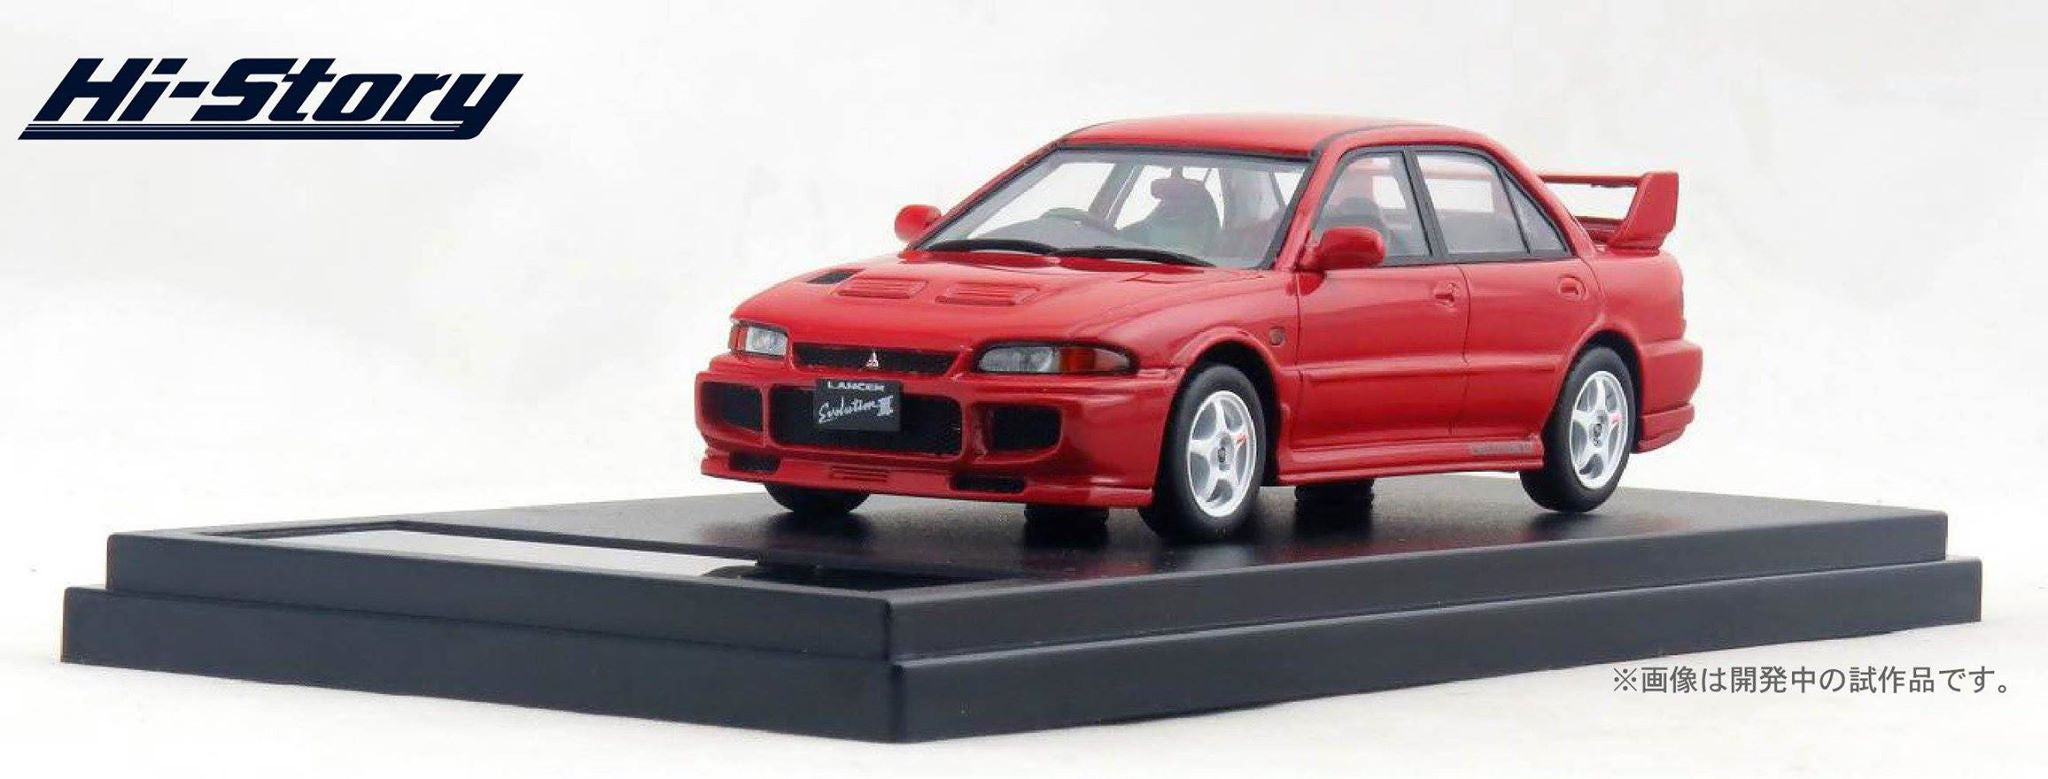 Hi-Story 1/43 Mitsubishi Lancer Evolution III GSR 1995 Red - HS149RE